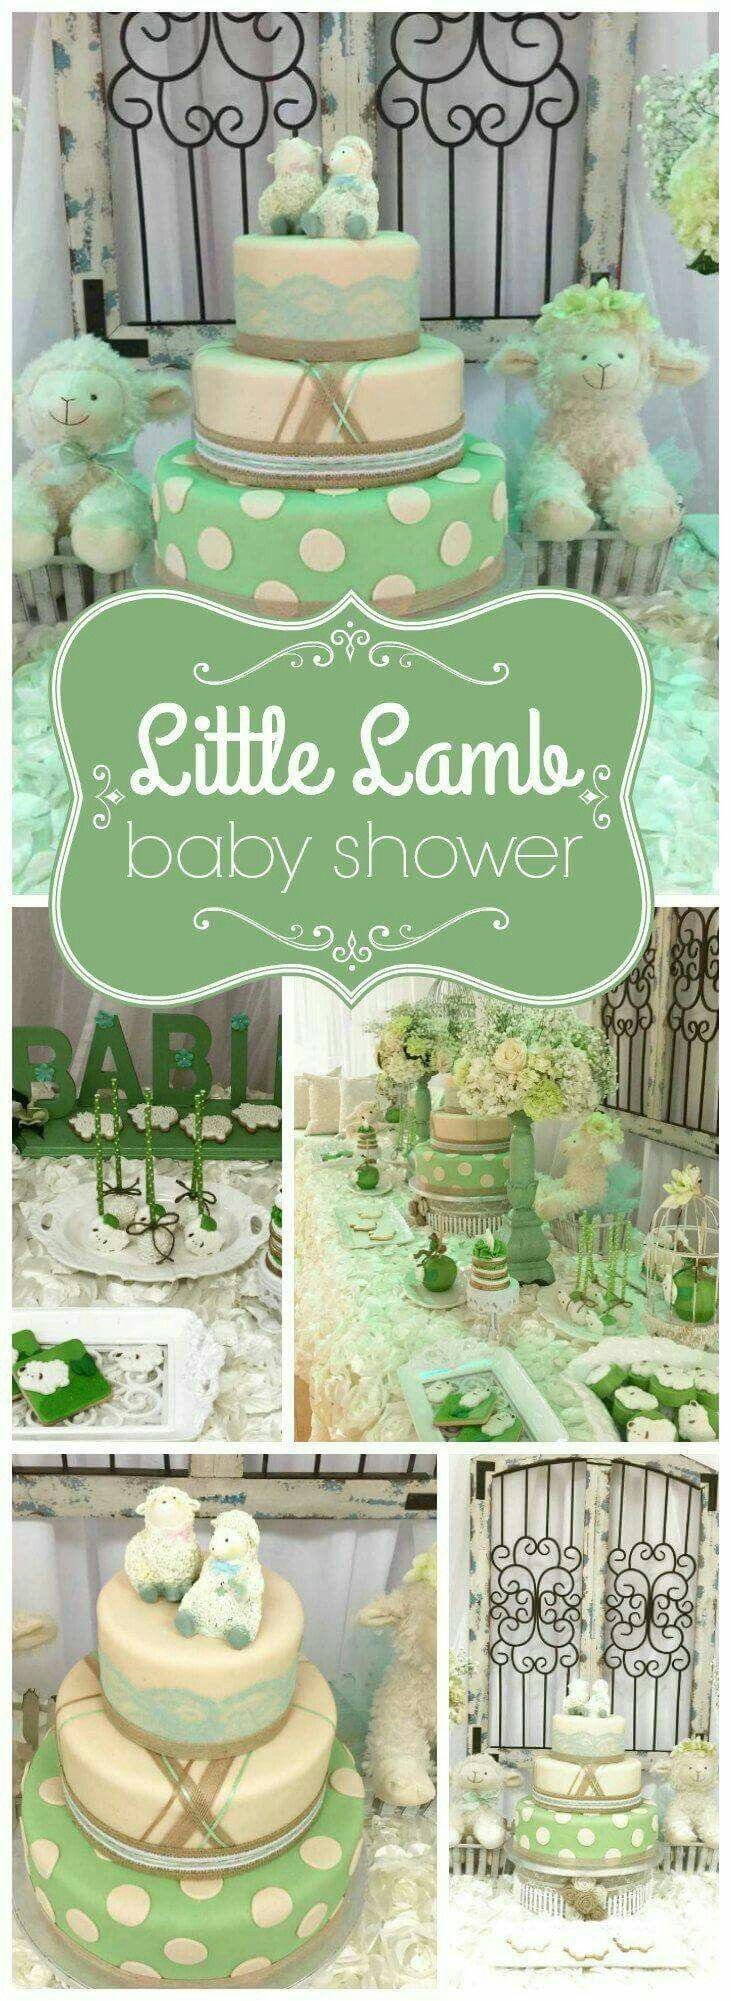 Baby bedding lamb theme sweet pea lamb baby bedding and nursery - Baby Shower Decorations Vintage Baby Showerslamb